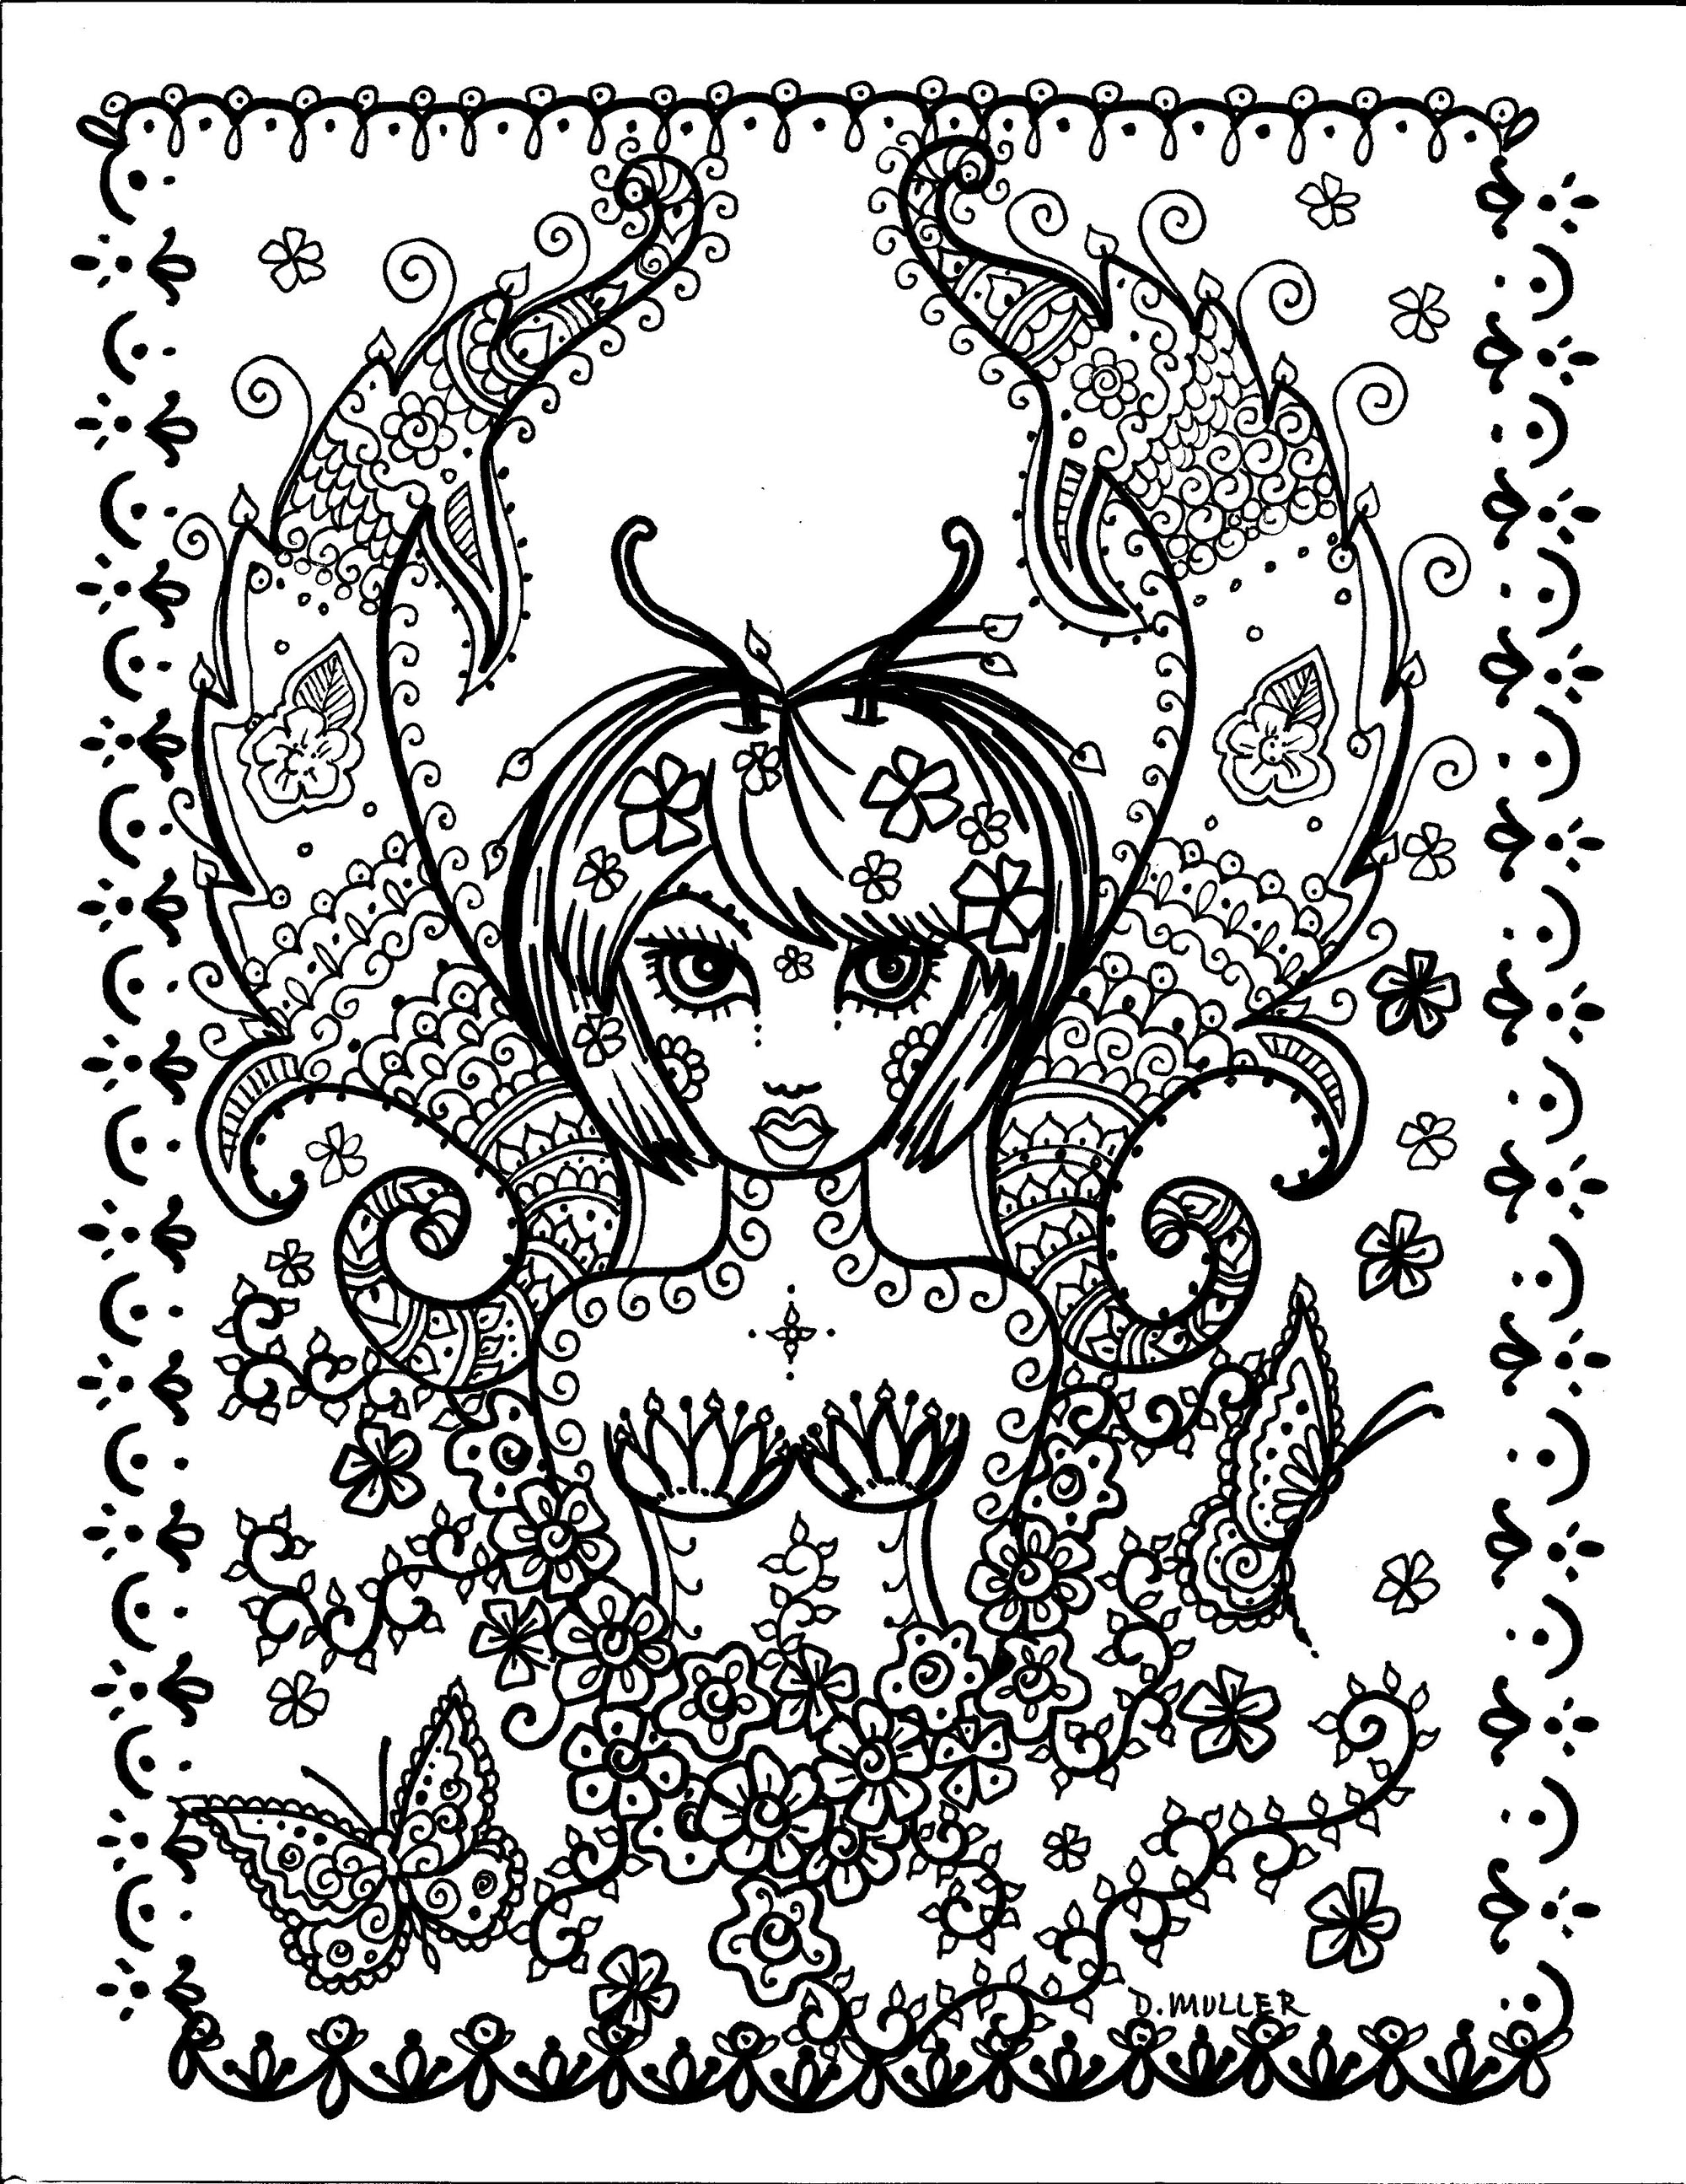 Butterfly girlFrom the gallery : Zen & Anti StressArtist : Deborah Muller